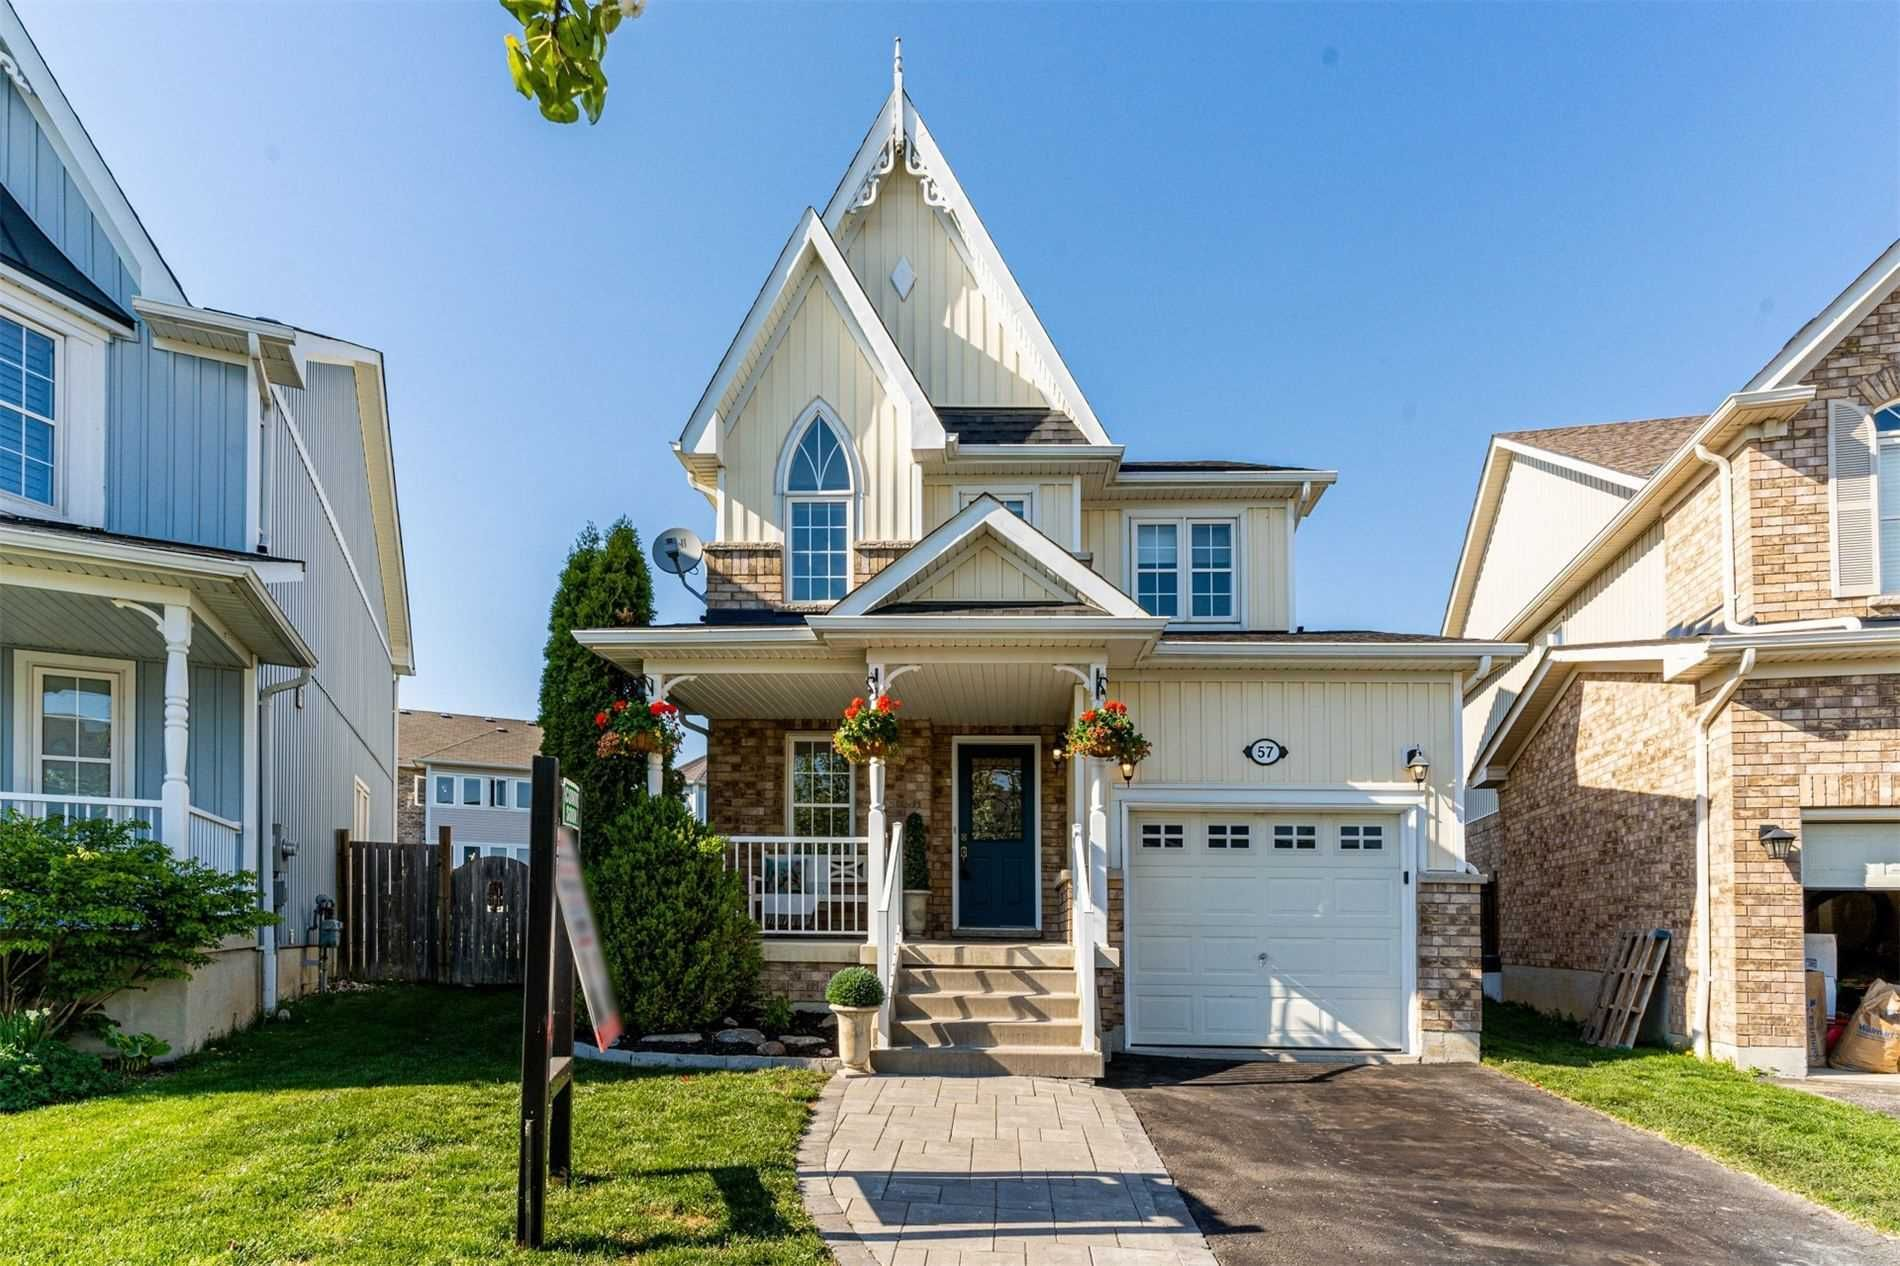 Main Photo: 57 Cranborne Crescent in Whitby: Brooklin House (2-Storey) for sale : MLS®# E5241648